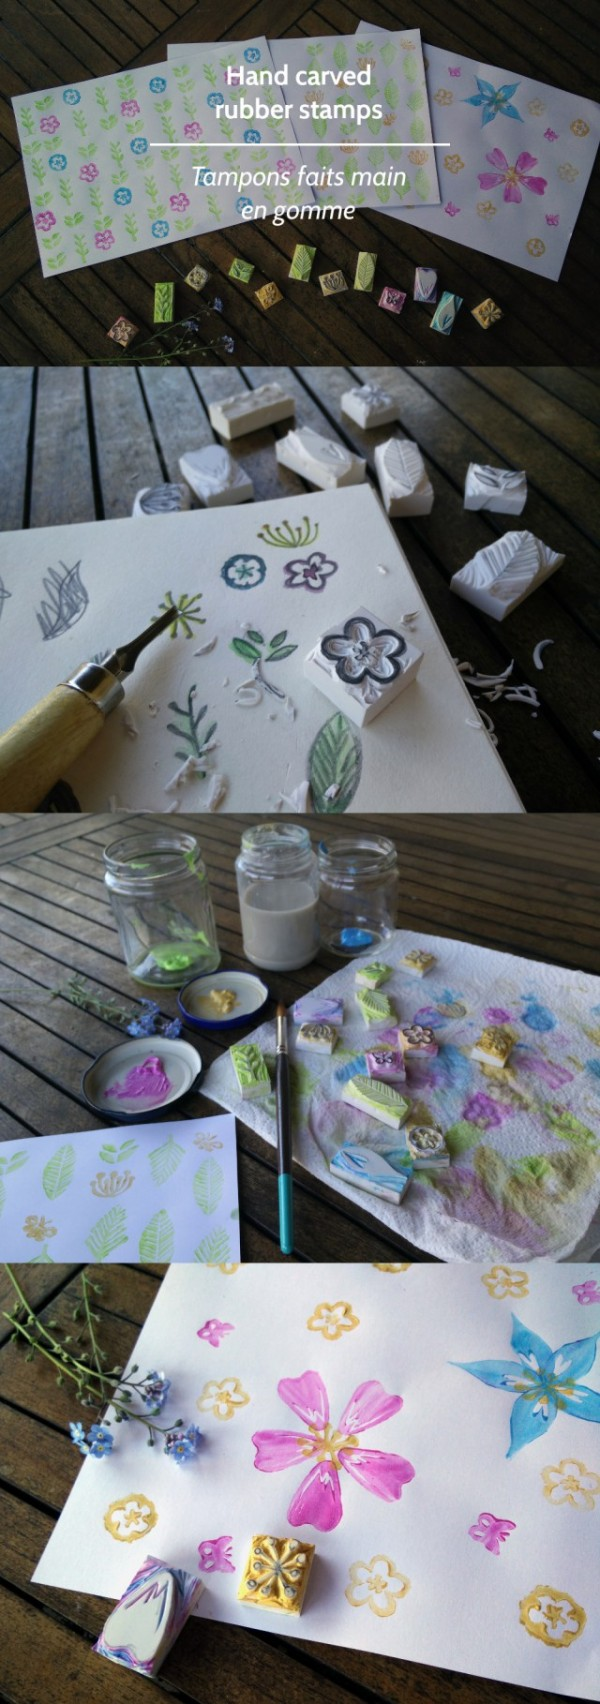 Tutorial: DIY Hand Carved Flower Stamps